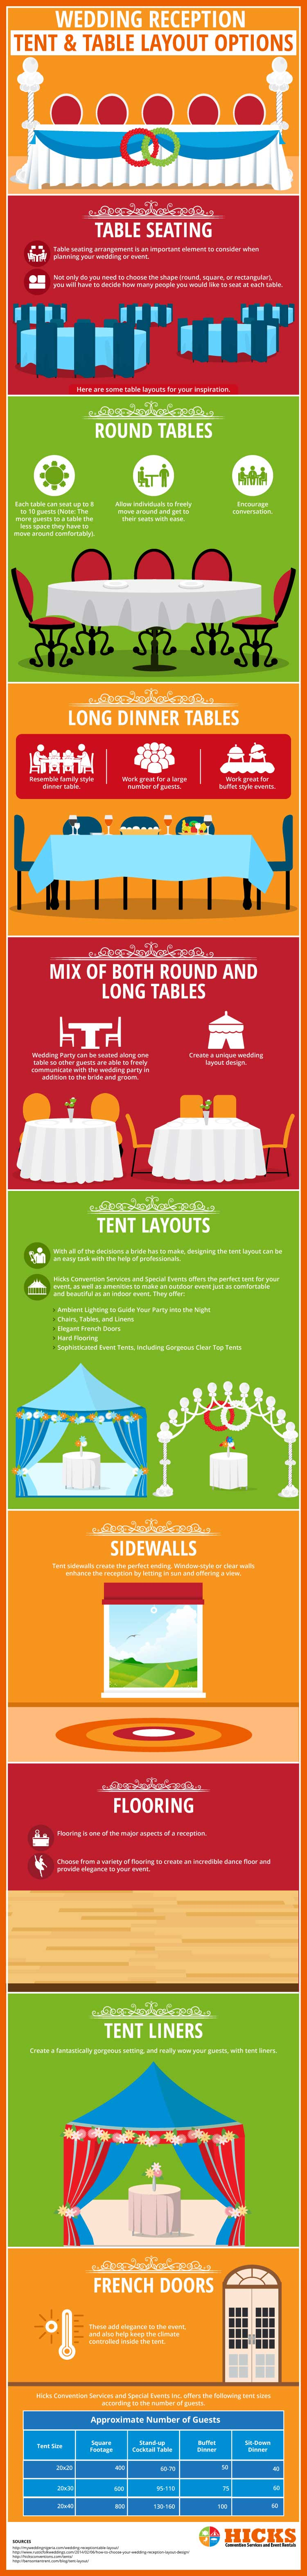 Infographic: Tent Sizes & Layouts